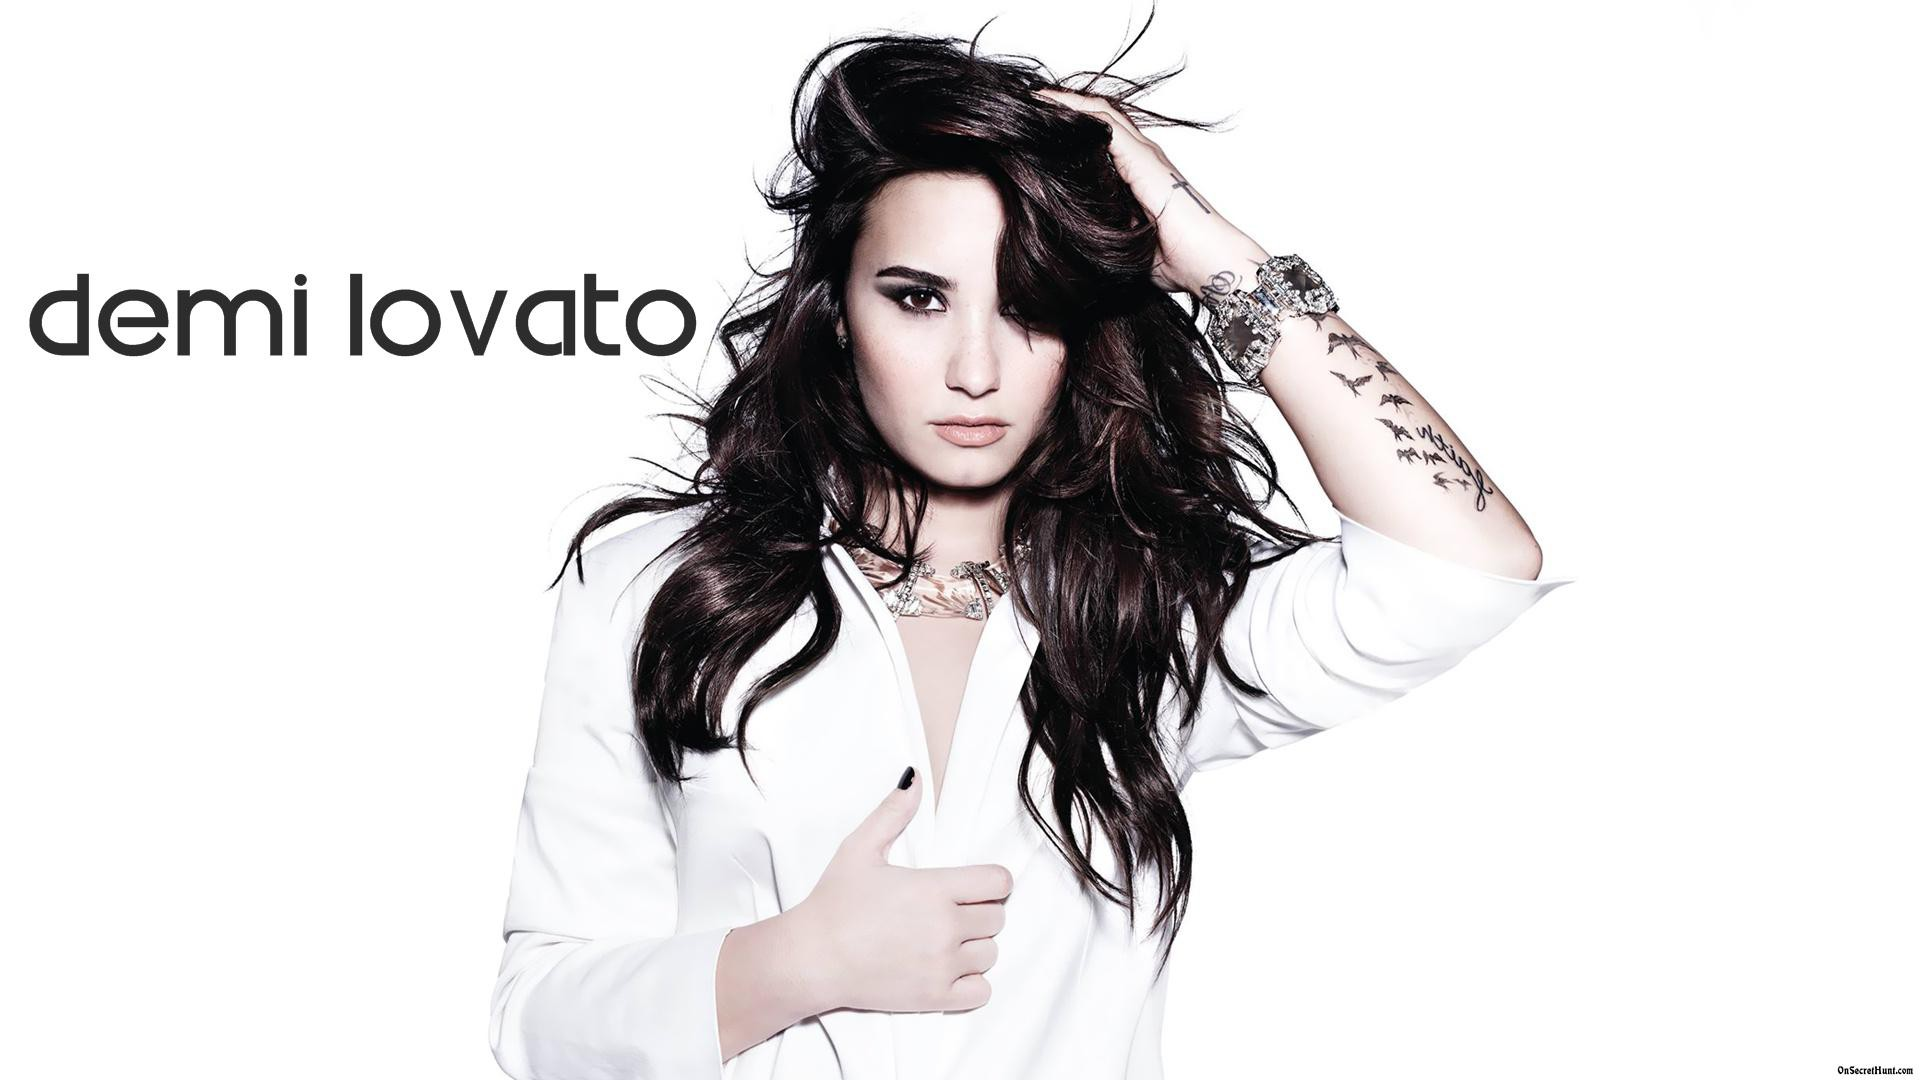 Demi Lovato Wallpaper   QyGjxZ 1920x1080